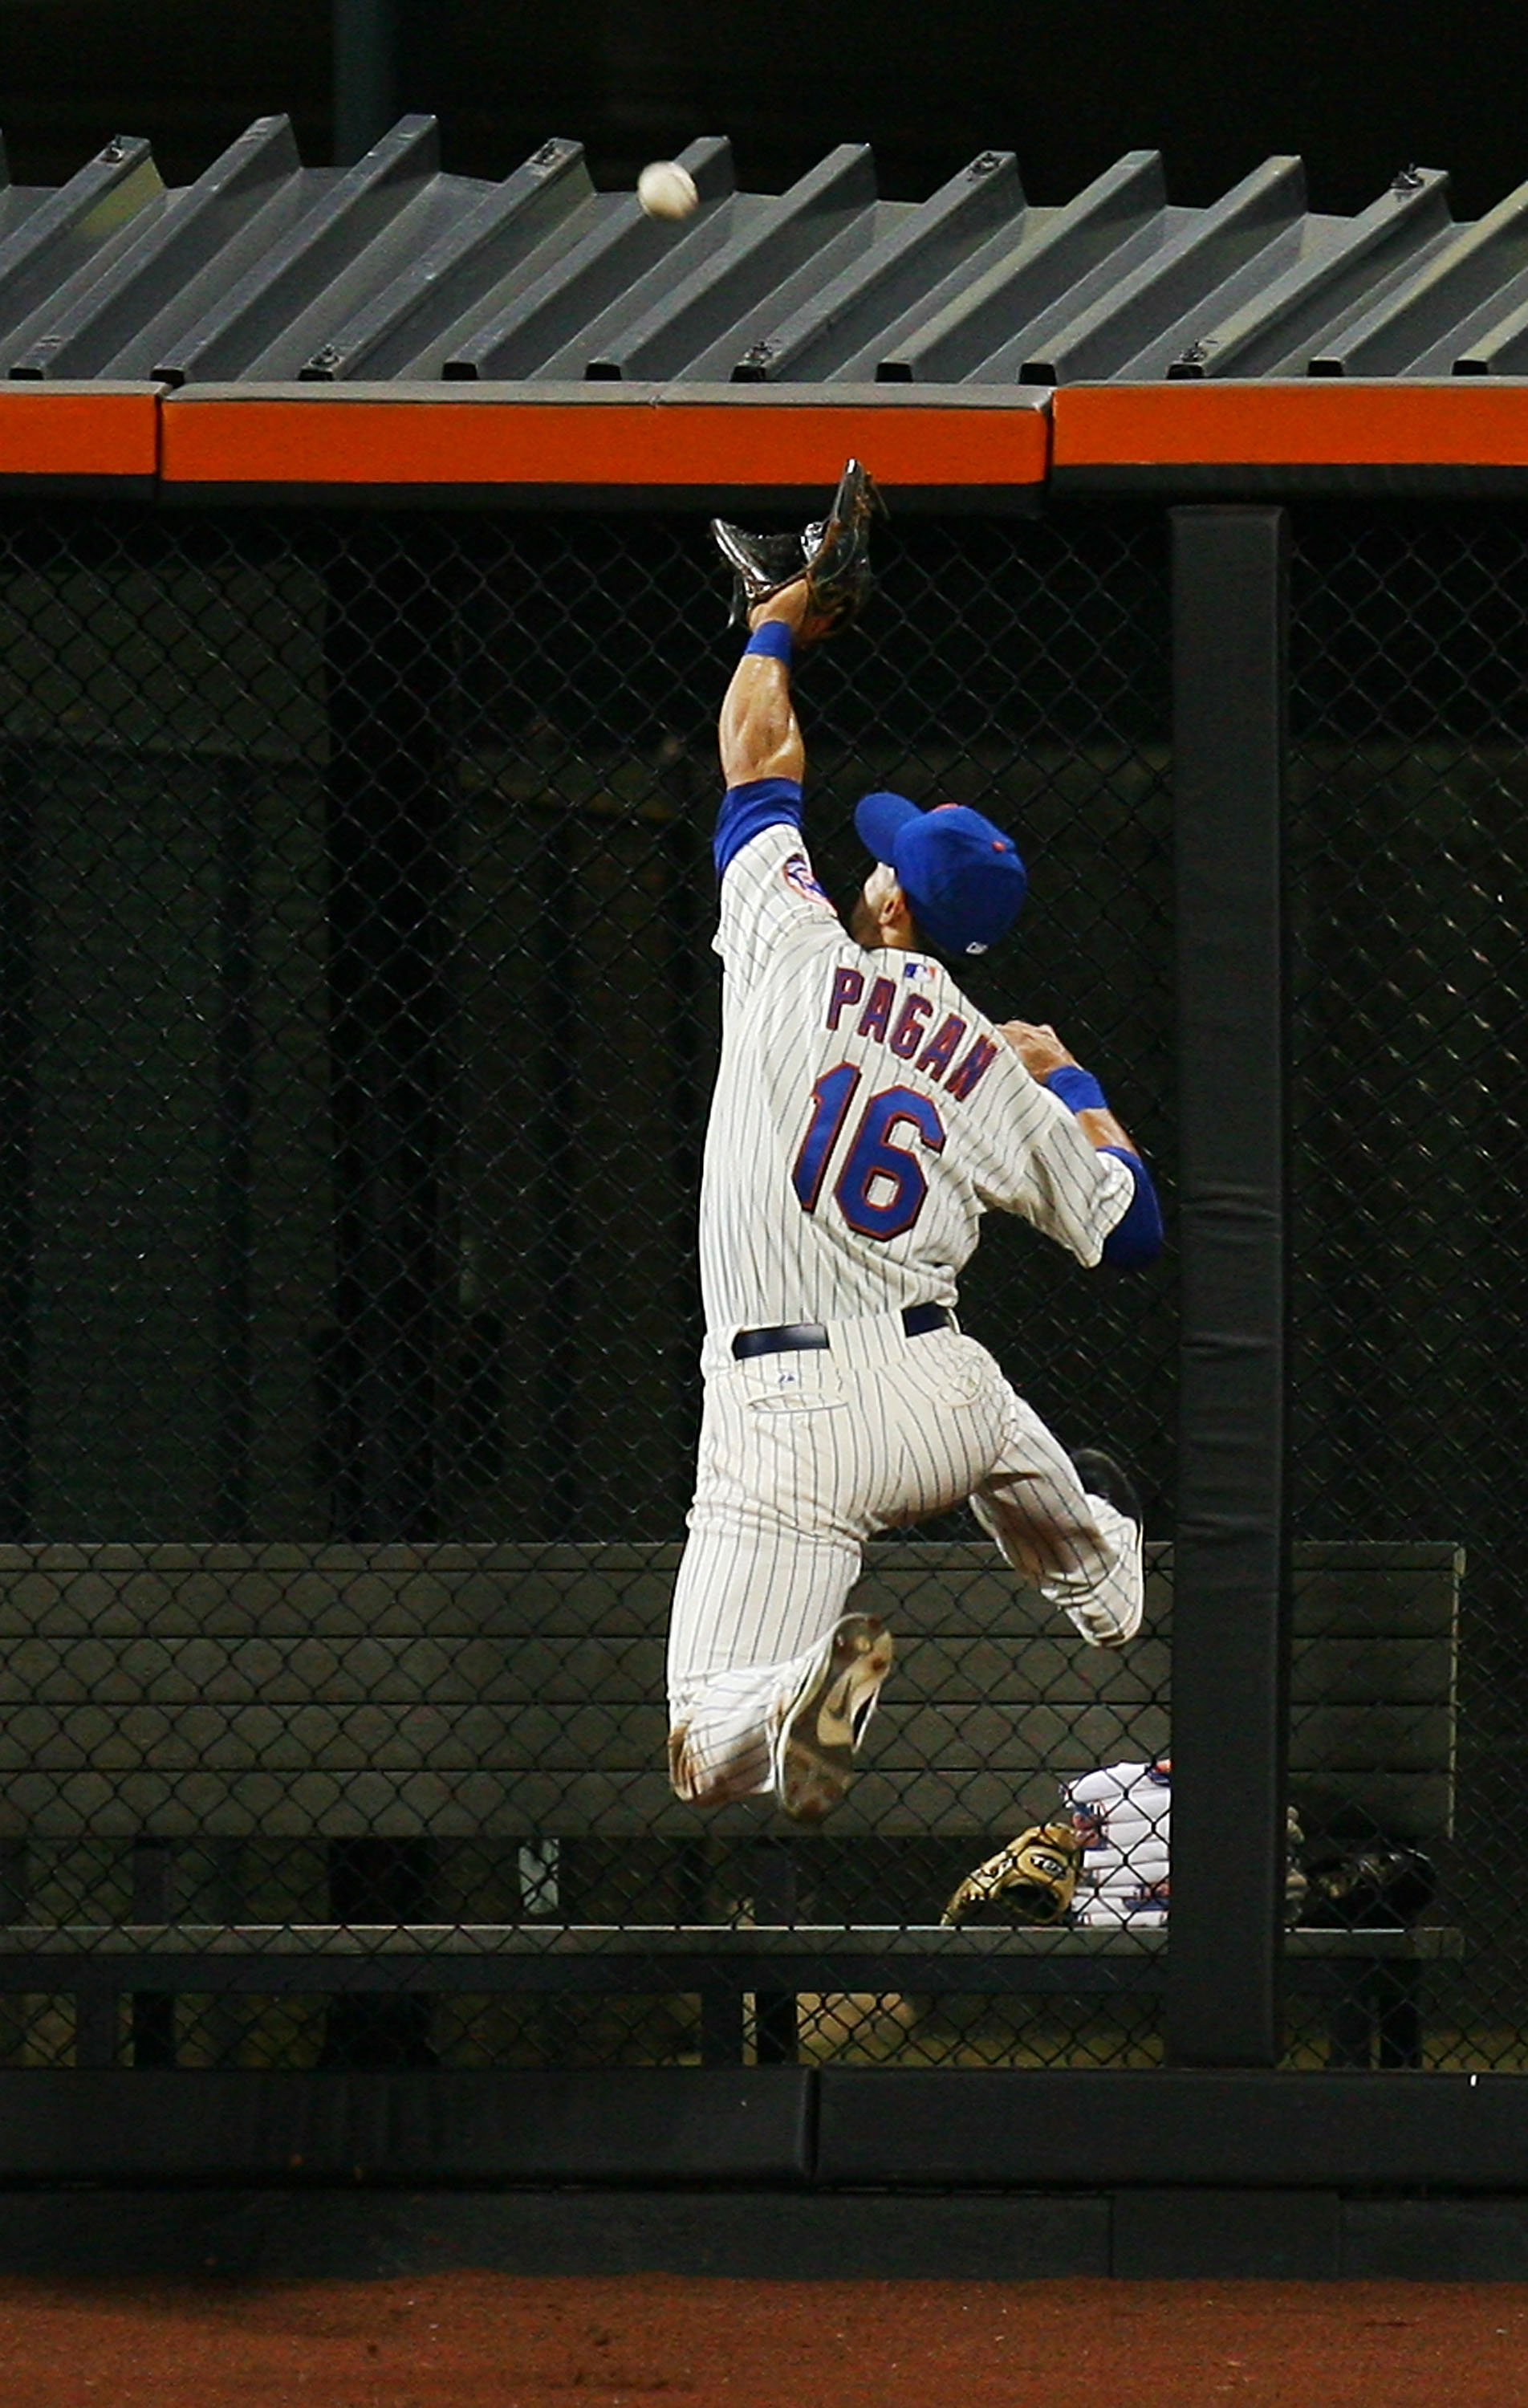 NEW YORK - SEPTEMBER 15:  Angel Pagan #16 of the New York Mets is unable to catch a triple hit by Pedro Alvarez of the Pittsburgh Pirates on September 15, 2010 at Citi Field in the Flushing neighborhood of the Queens borough of New York City.  (Photo by A